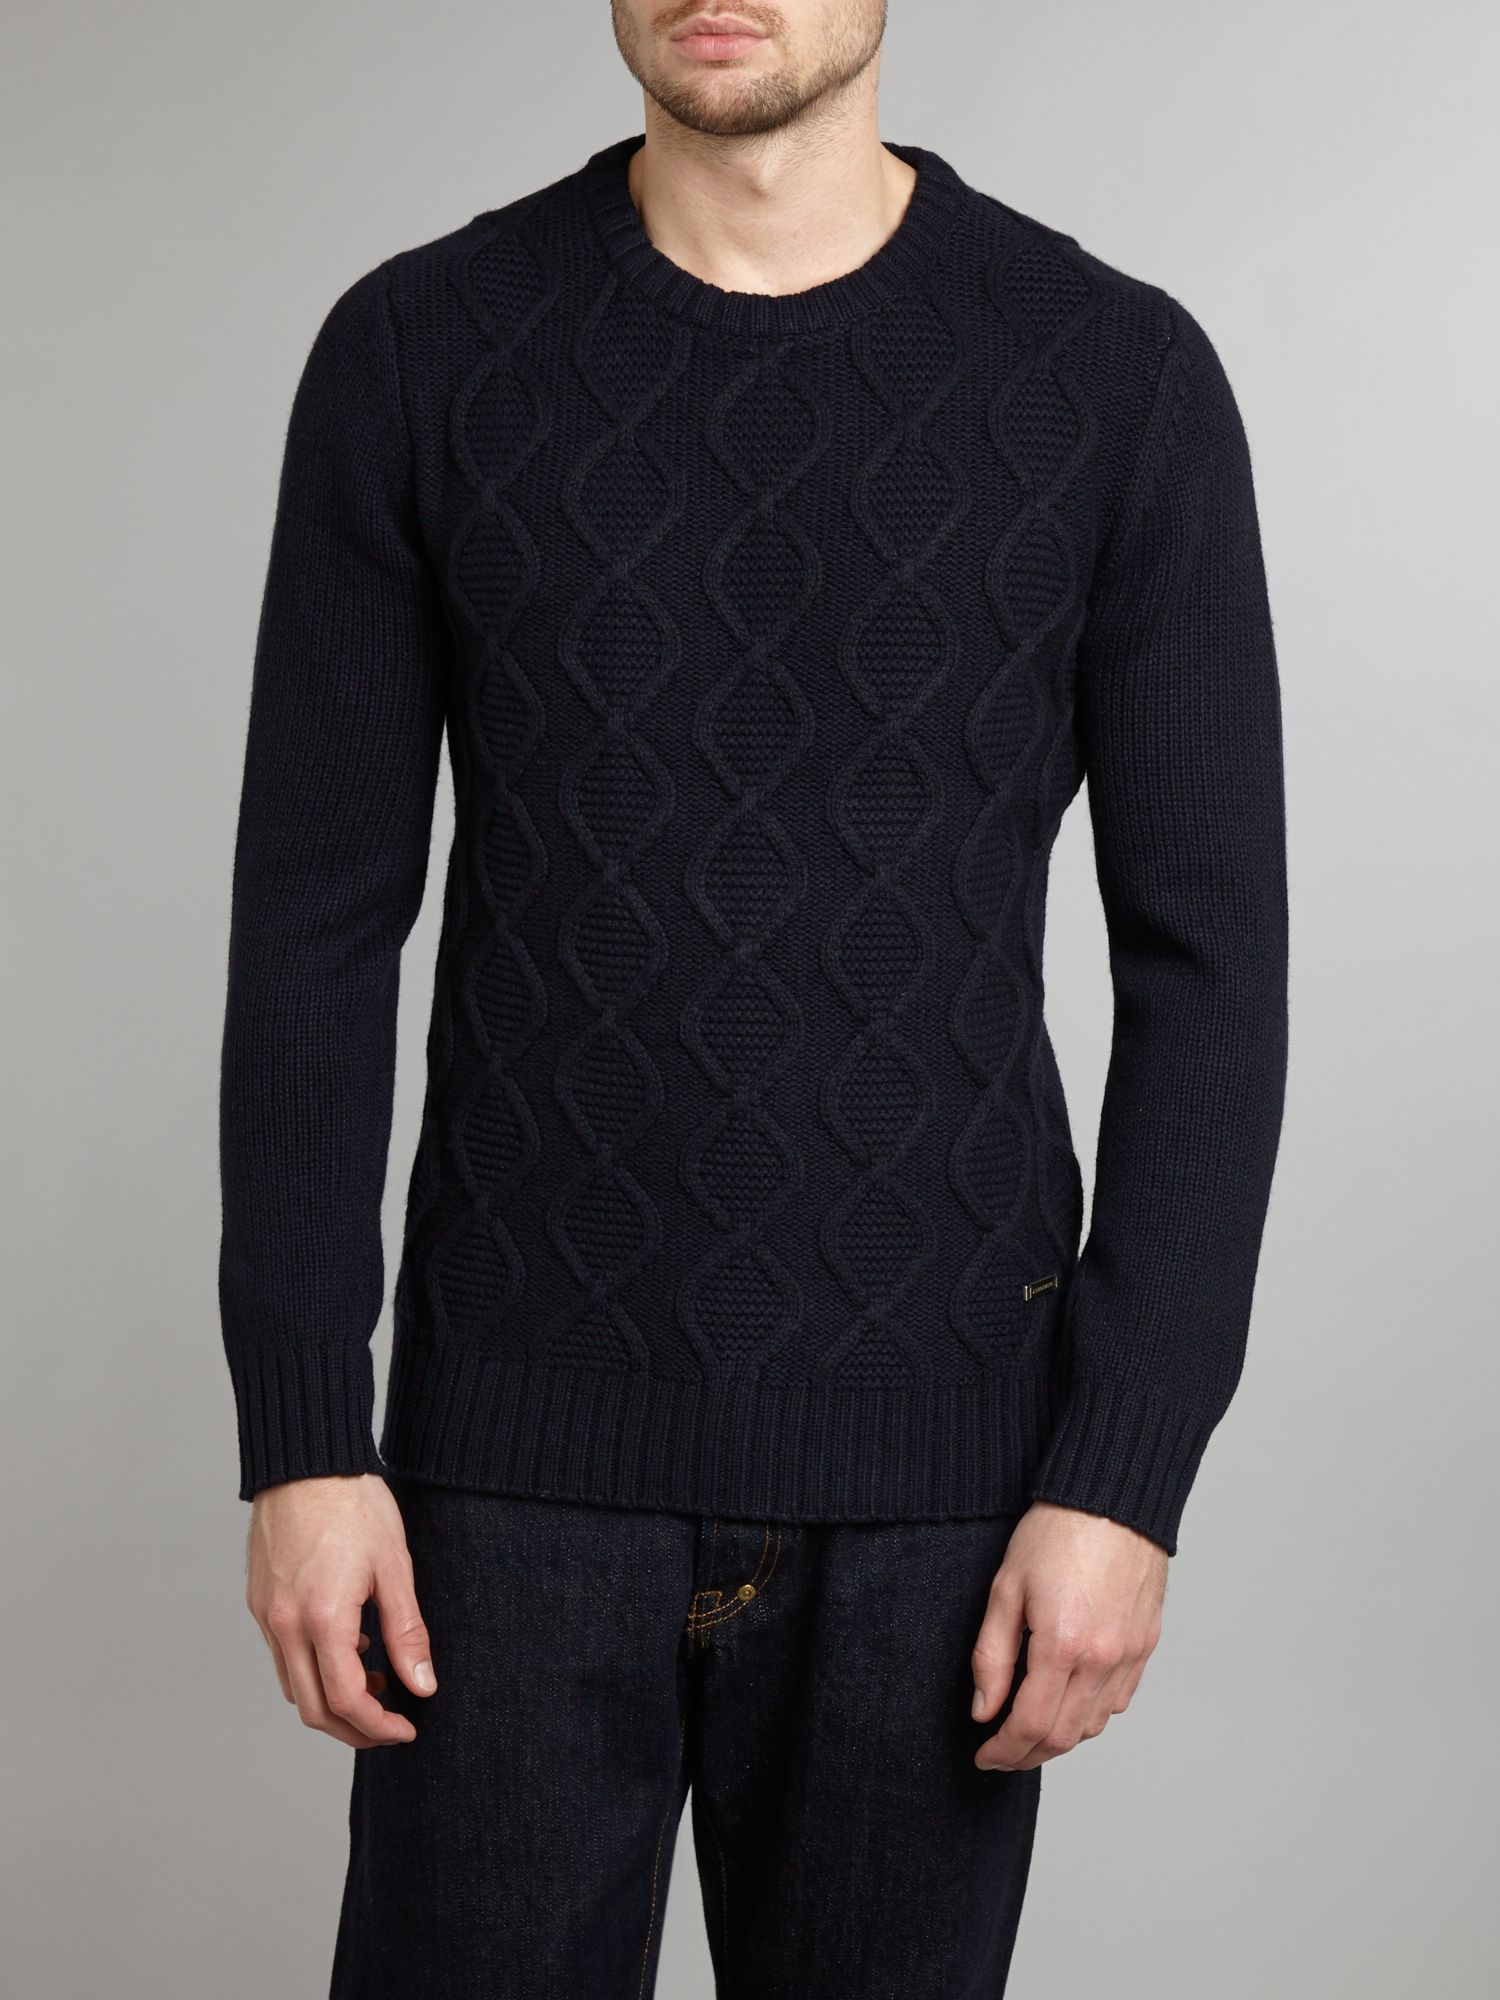 Crew neck soft structure knitwear